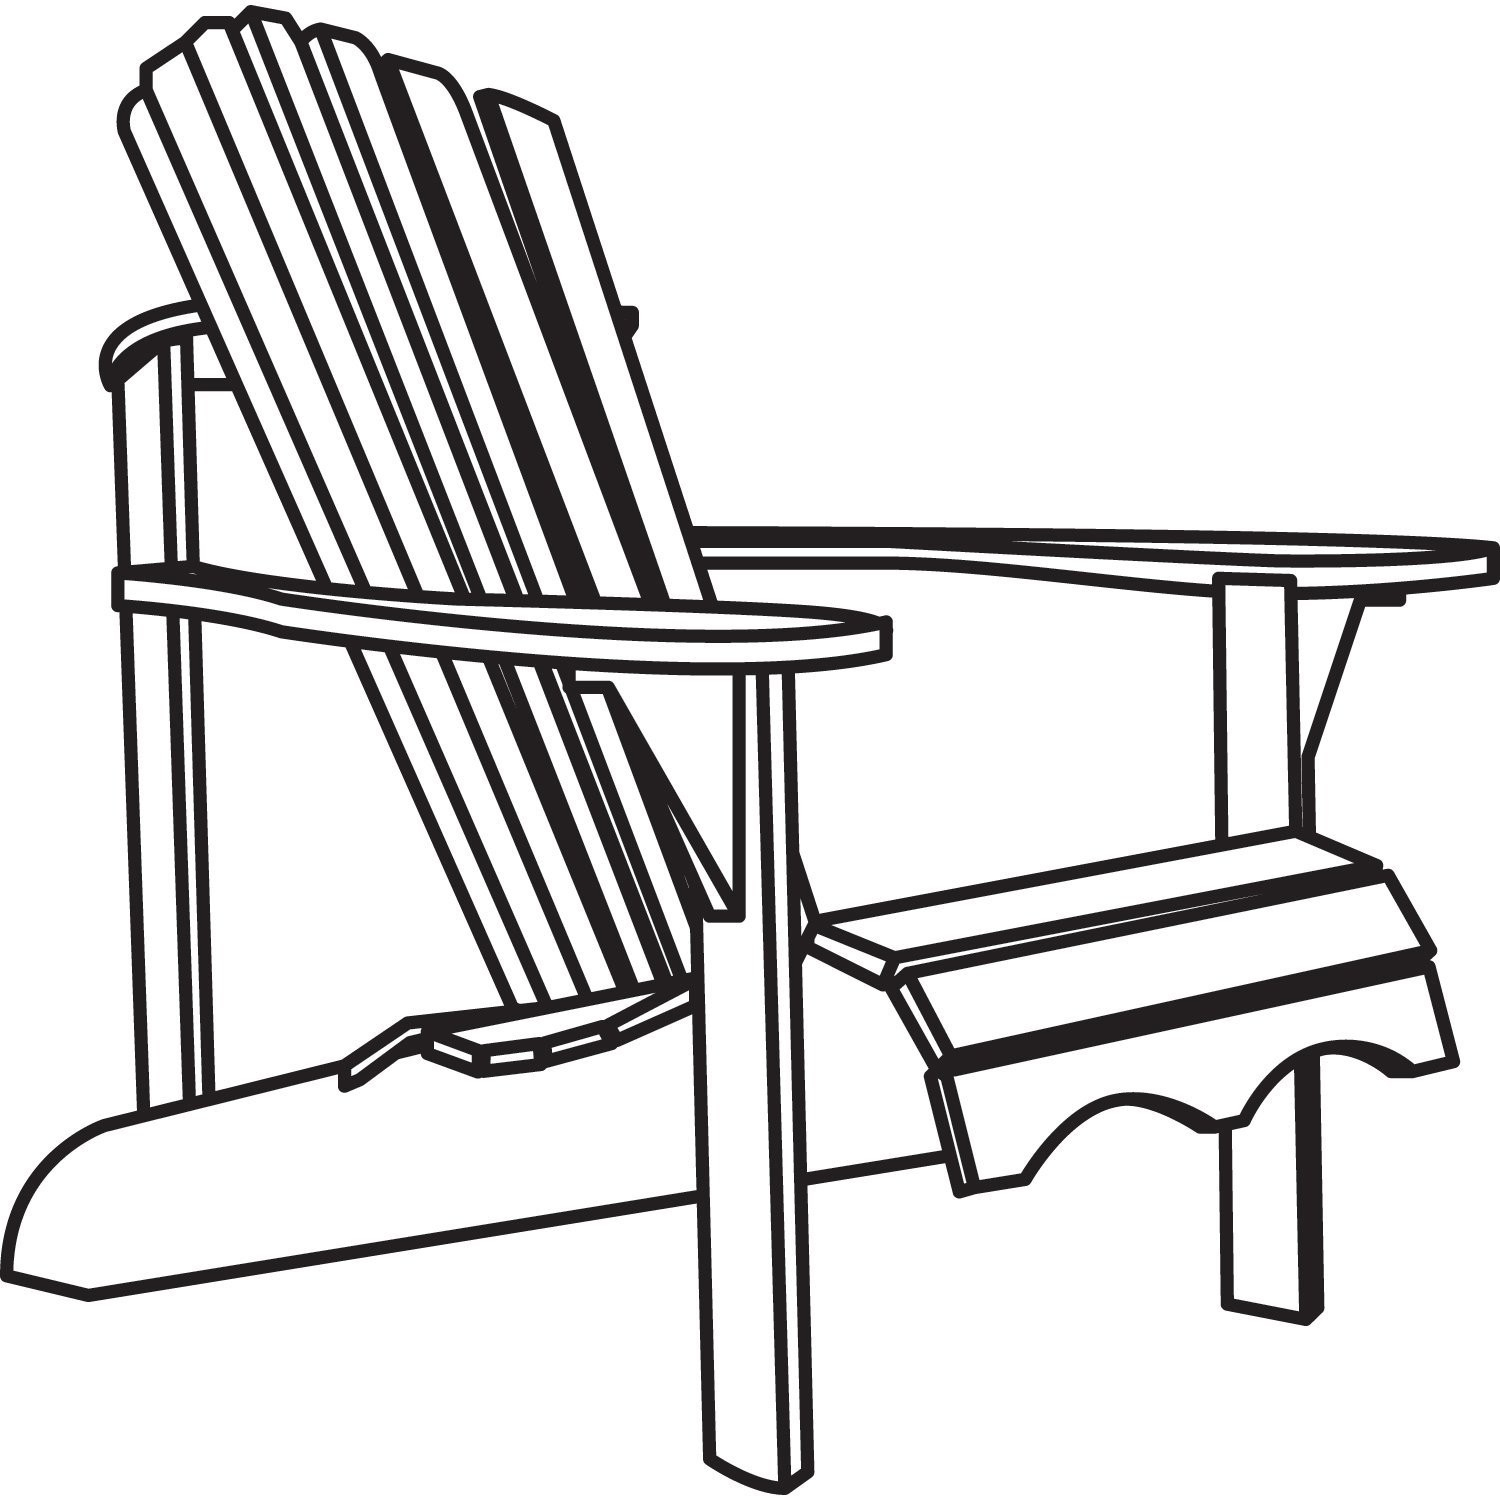 Strange Adirondack Chair Drawing Free Download Best Adirondack Beatyapartments Chair Design Images Beatyapartmentscom